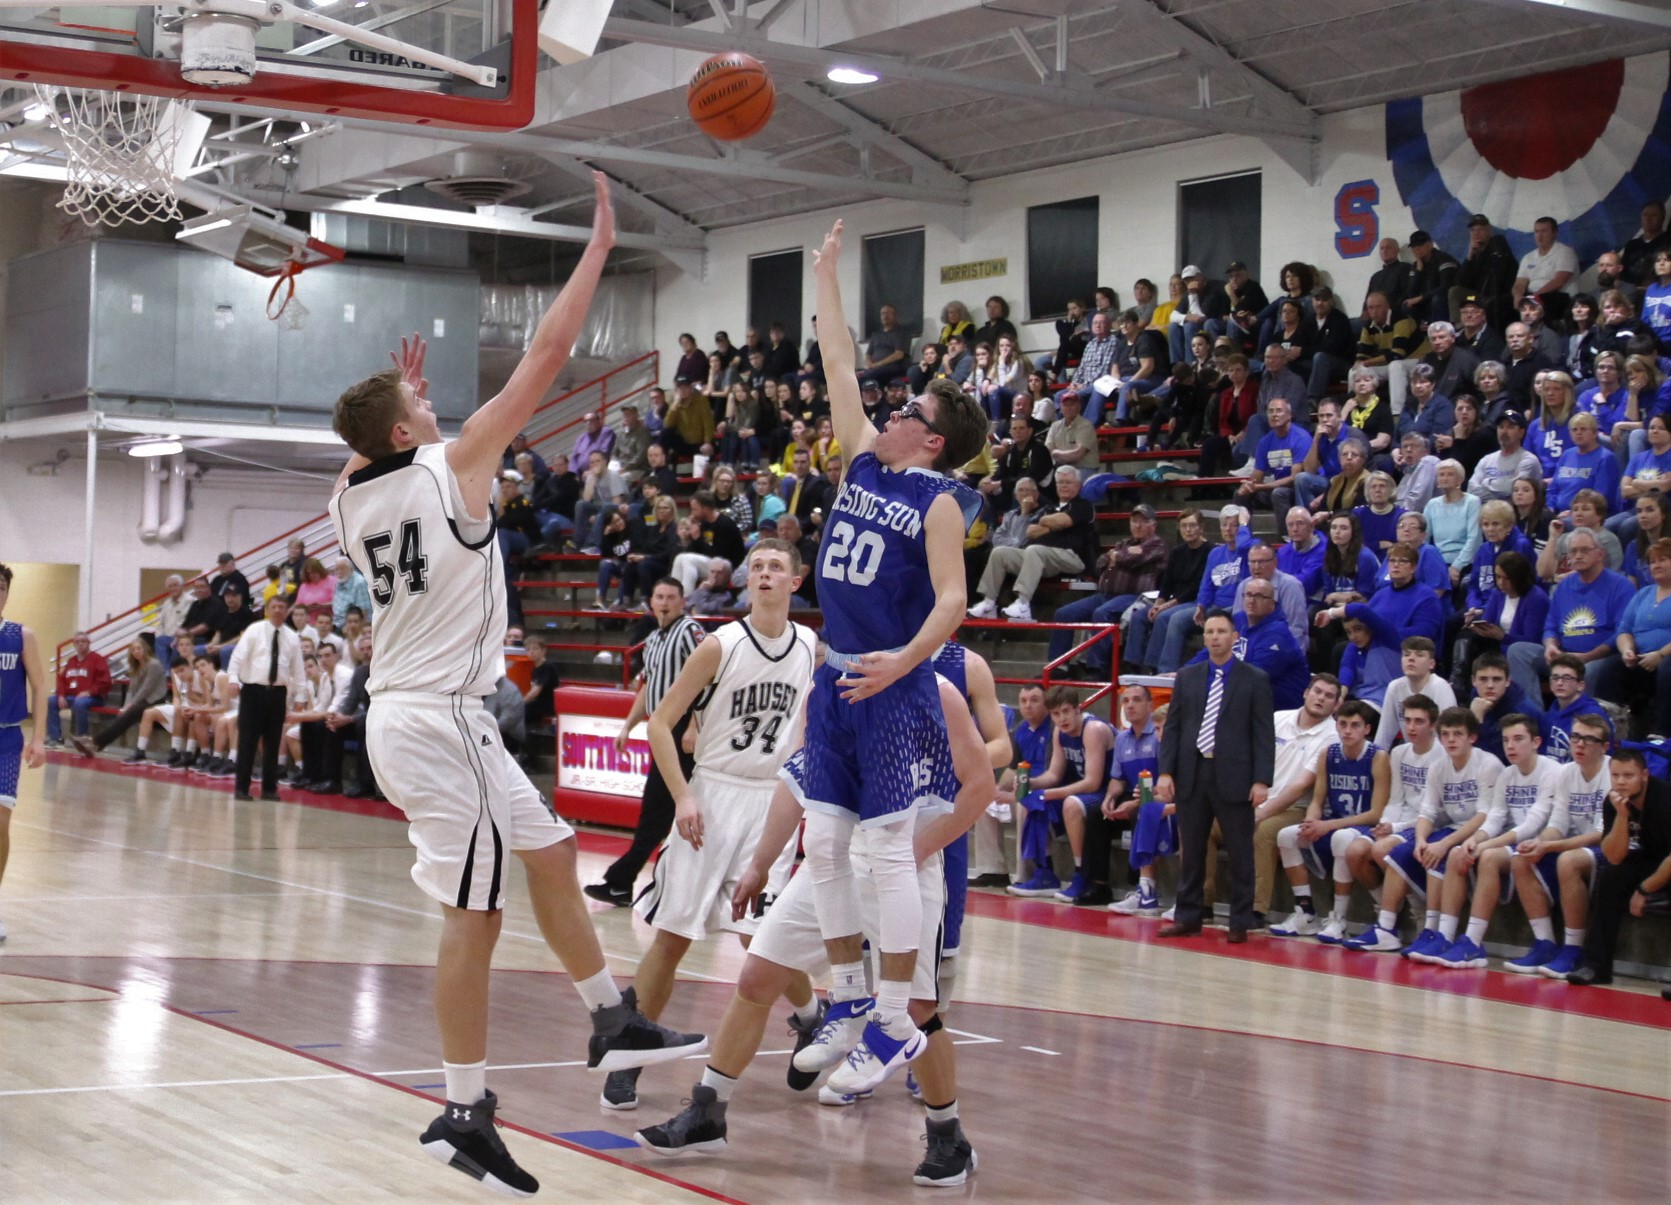 Shiners Fall Short to #9 Ranked Jets in Sectional